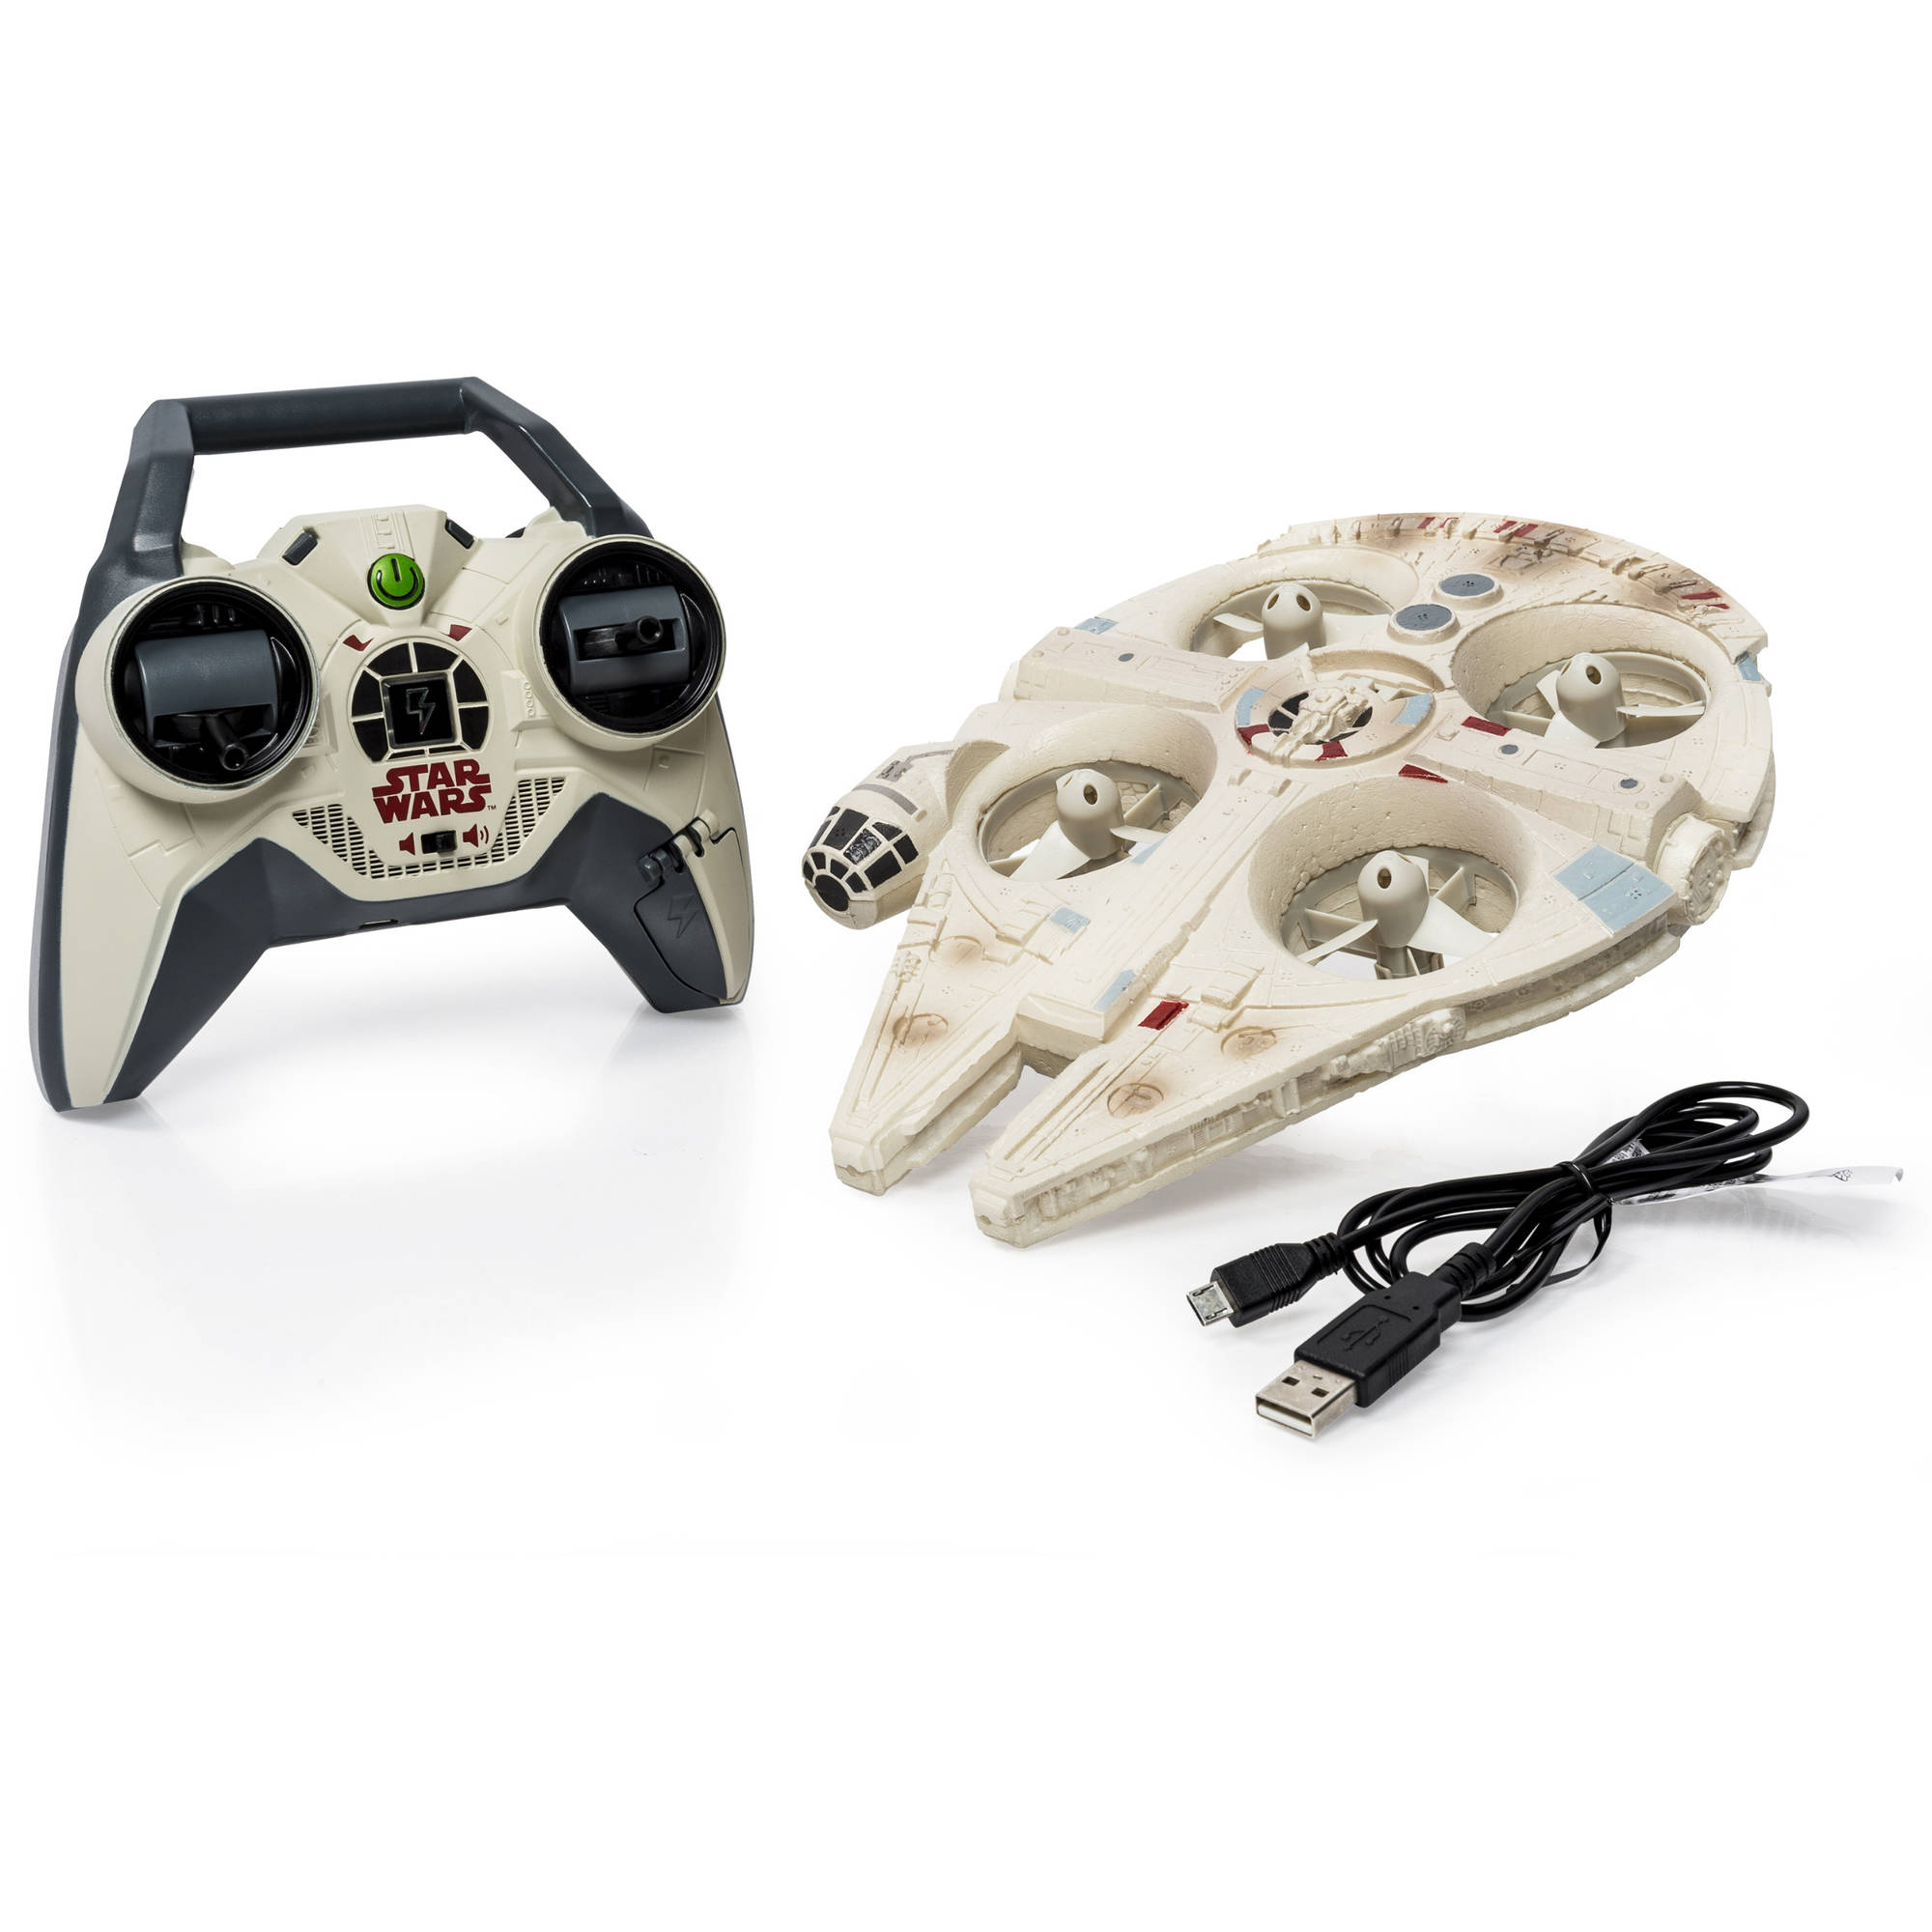 Air Hogs Star Wars Remote Control Millennium Falcon by EVERWIN TOYS (DONGGUAN) CO., LTD.